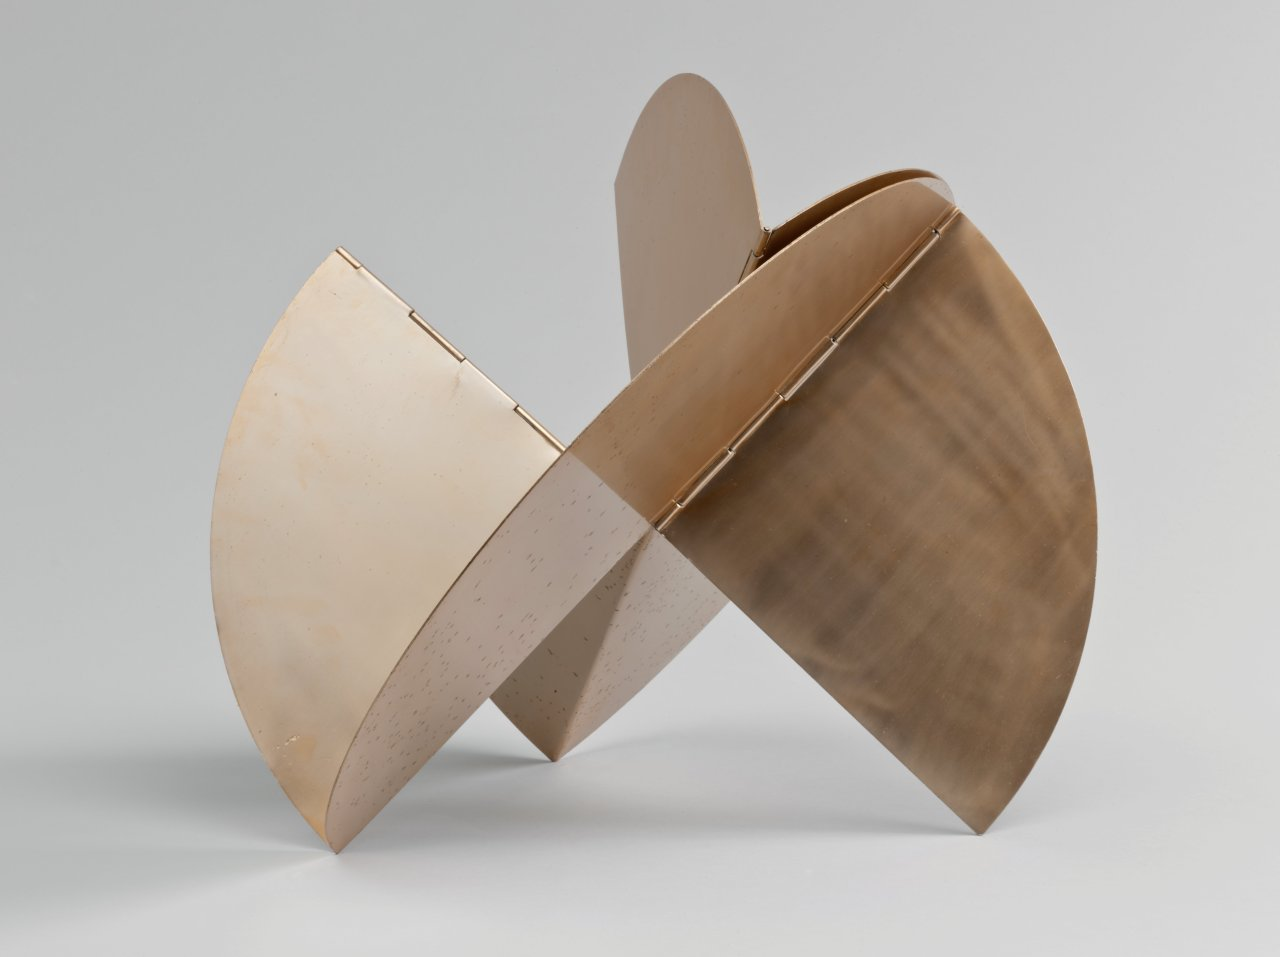 moma :       Lygia Clark, born today in 1920, made sculptures like  this one , which can be endlessly manipulated by viewers.  [Lygia Clark.  Sundial . 1960]